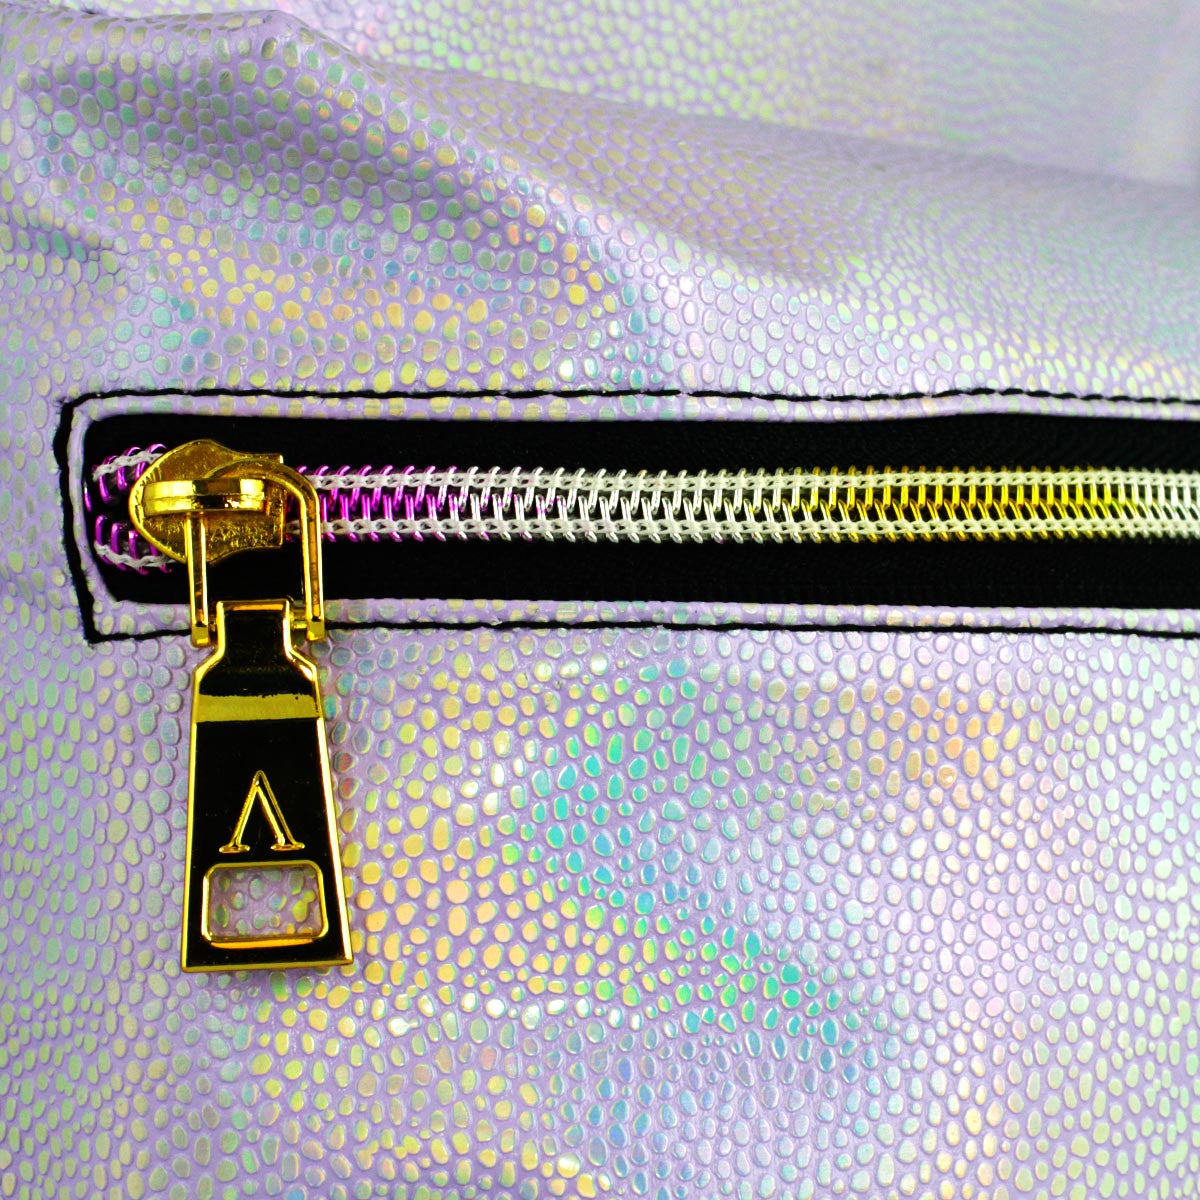 Detail of gold zipper on lavender leather designer hydration pack.